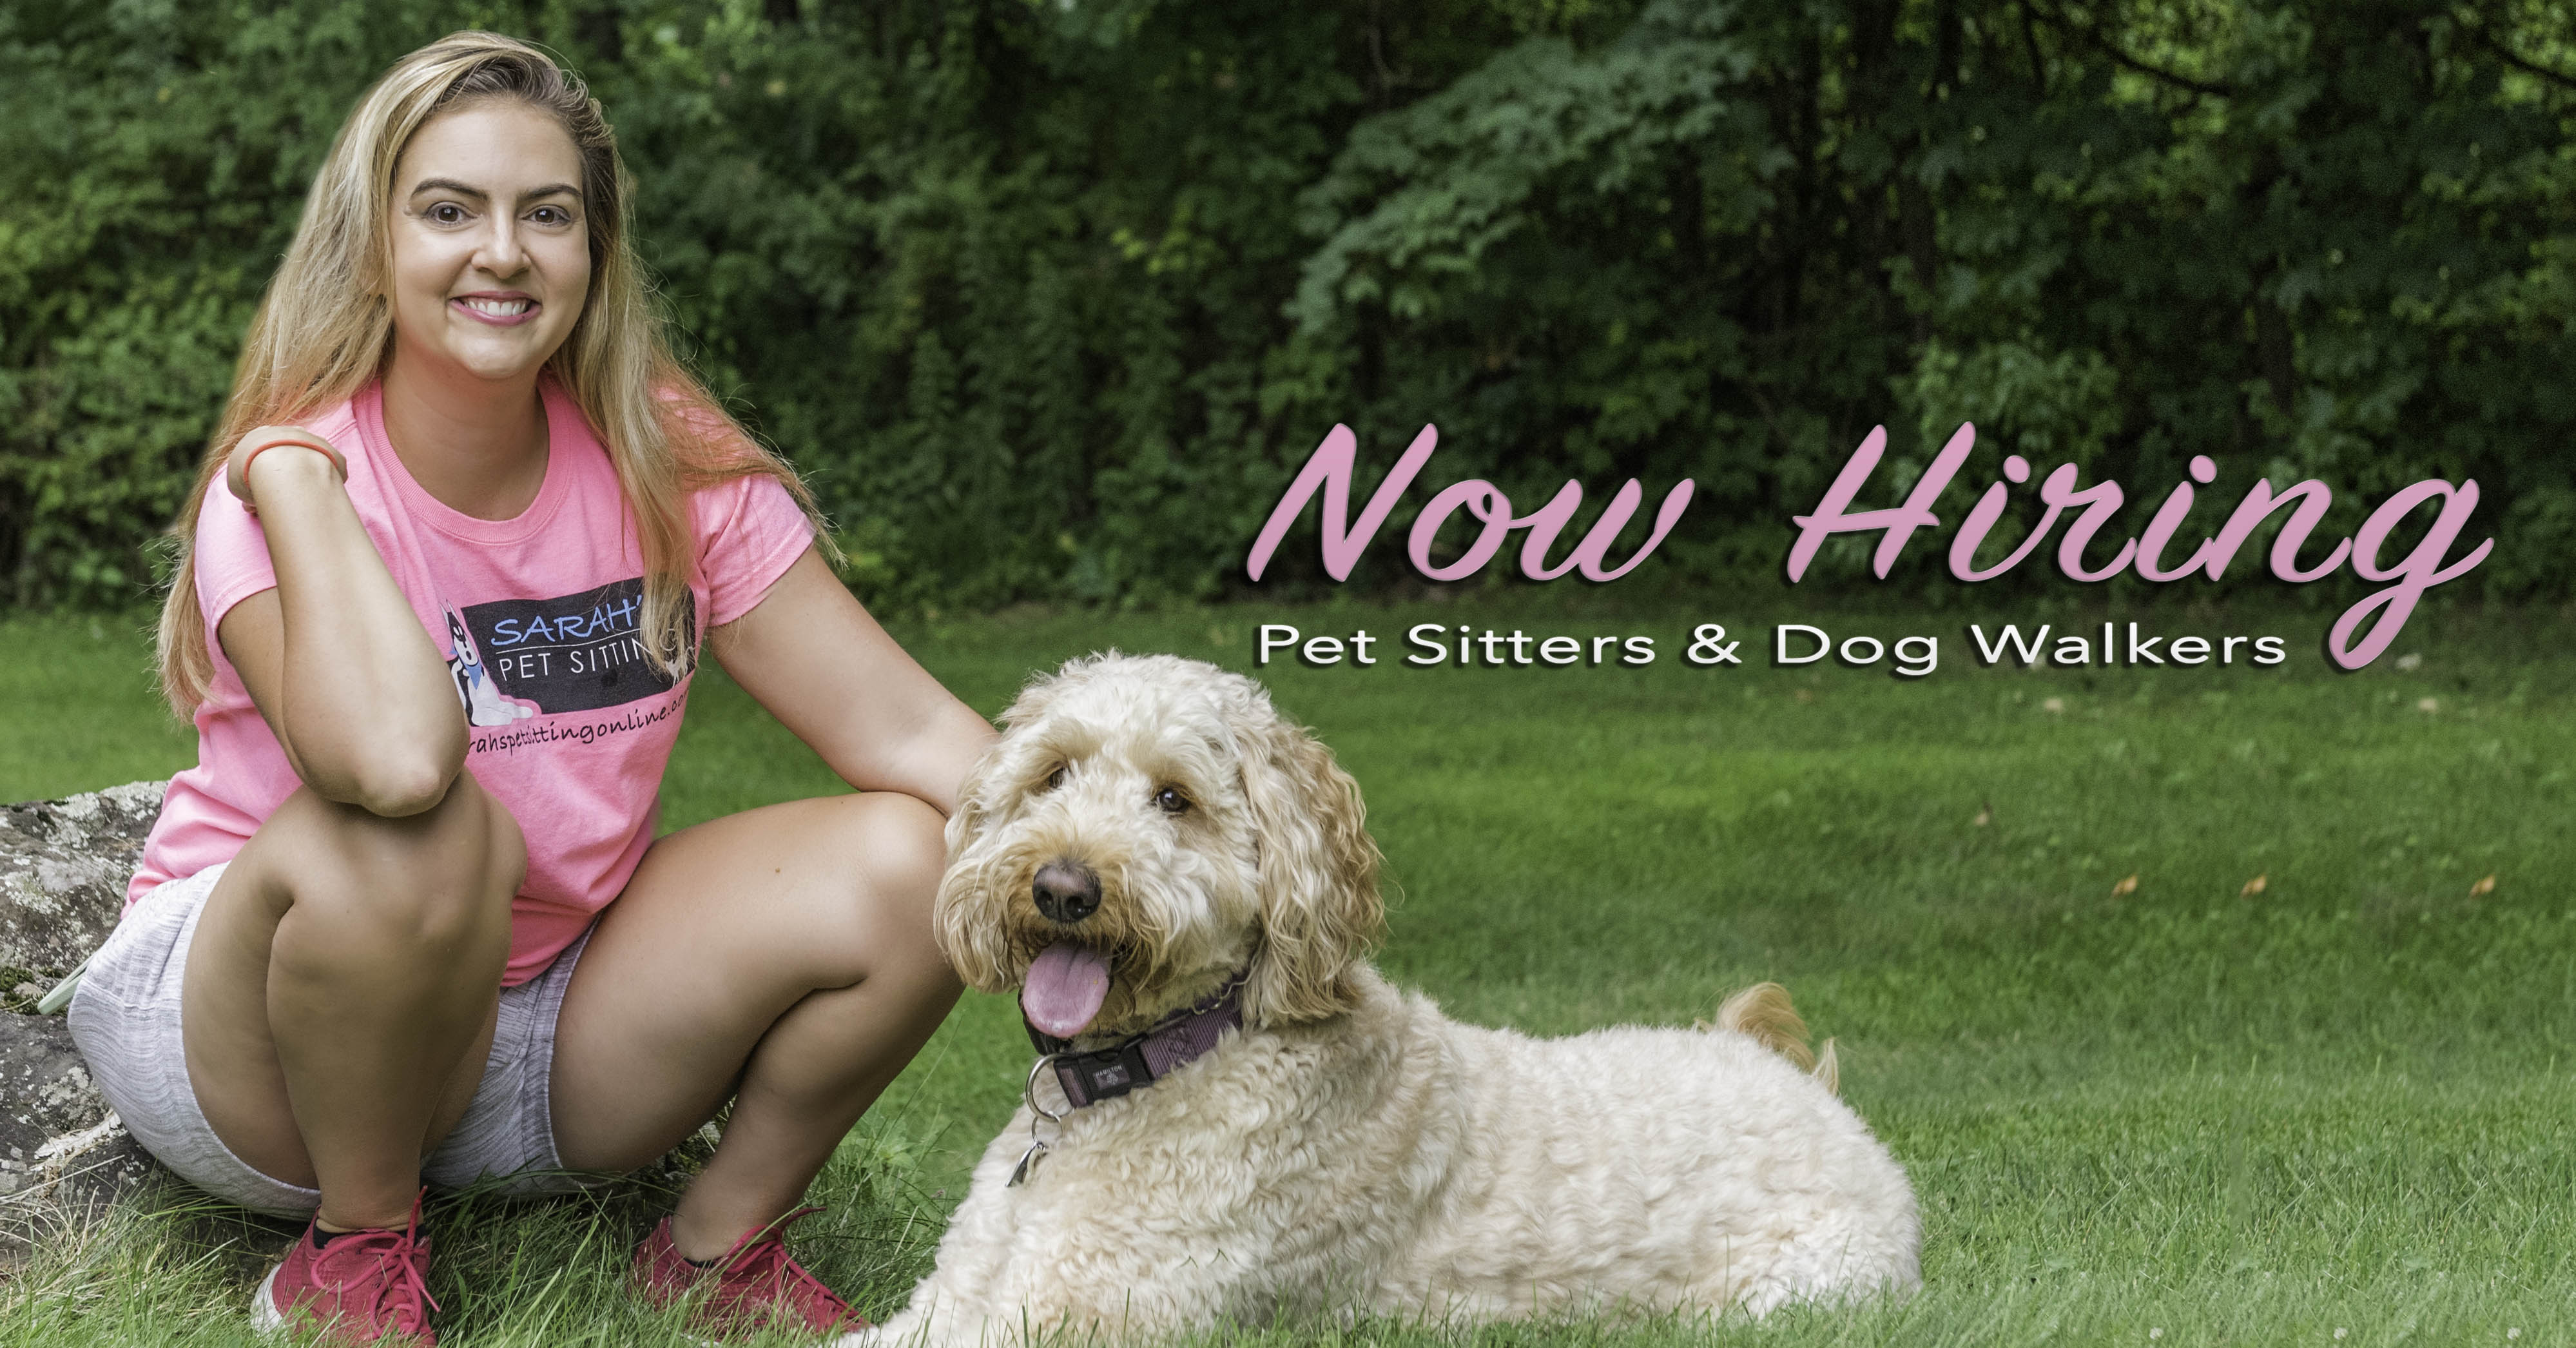 Now Hiring Apply Online To Become A Pet Sitter For Sarah